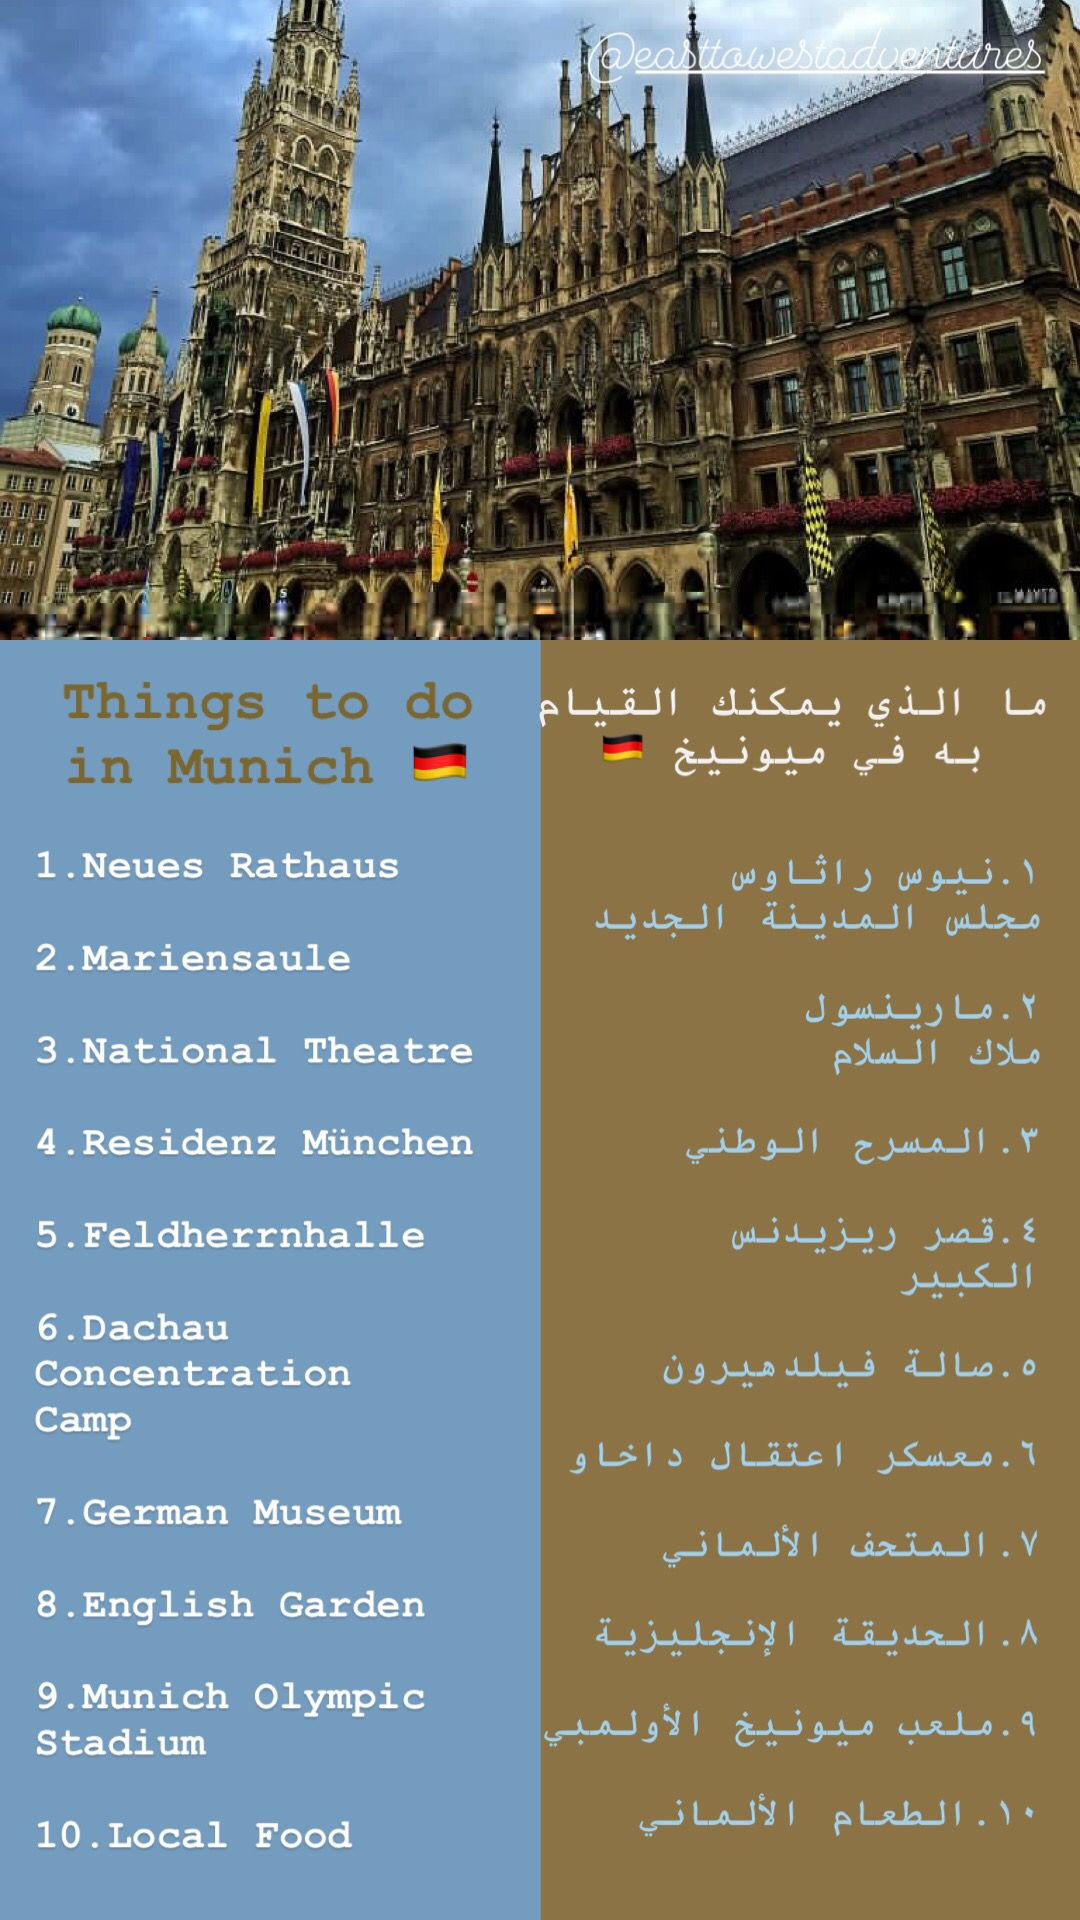 Things To Do In Munich Germany Travel And Tourism Dream Travel Destinations Madrid Travel